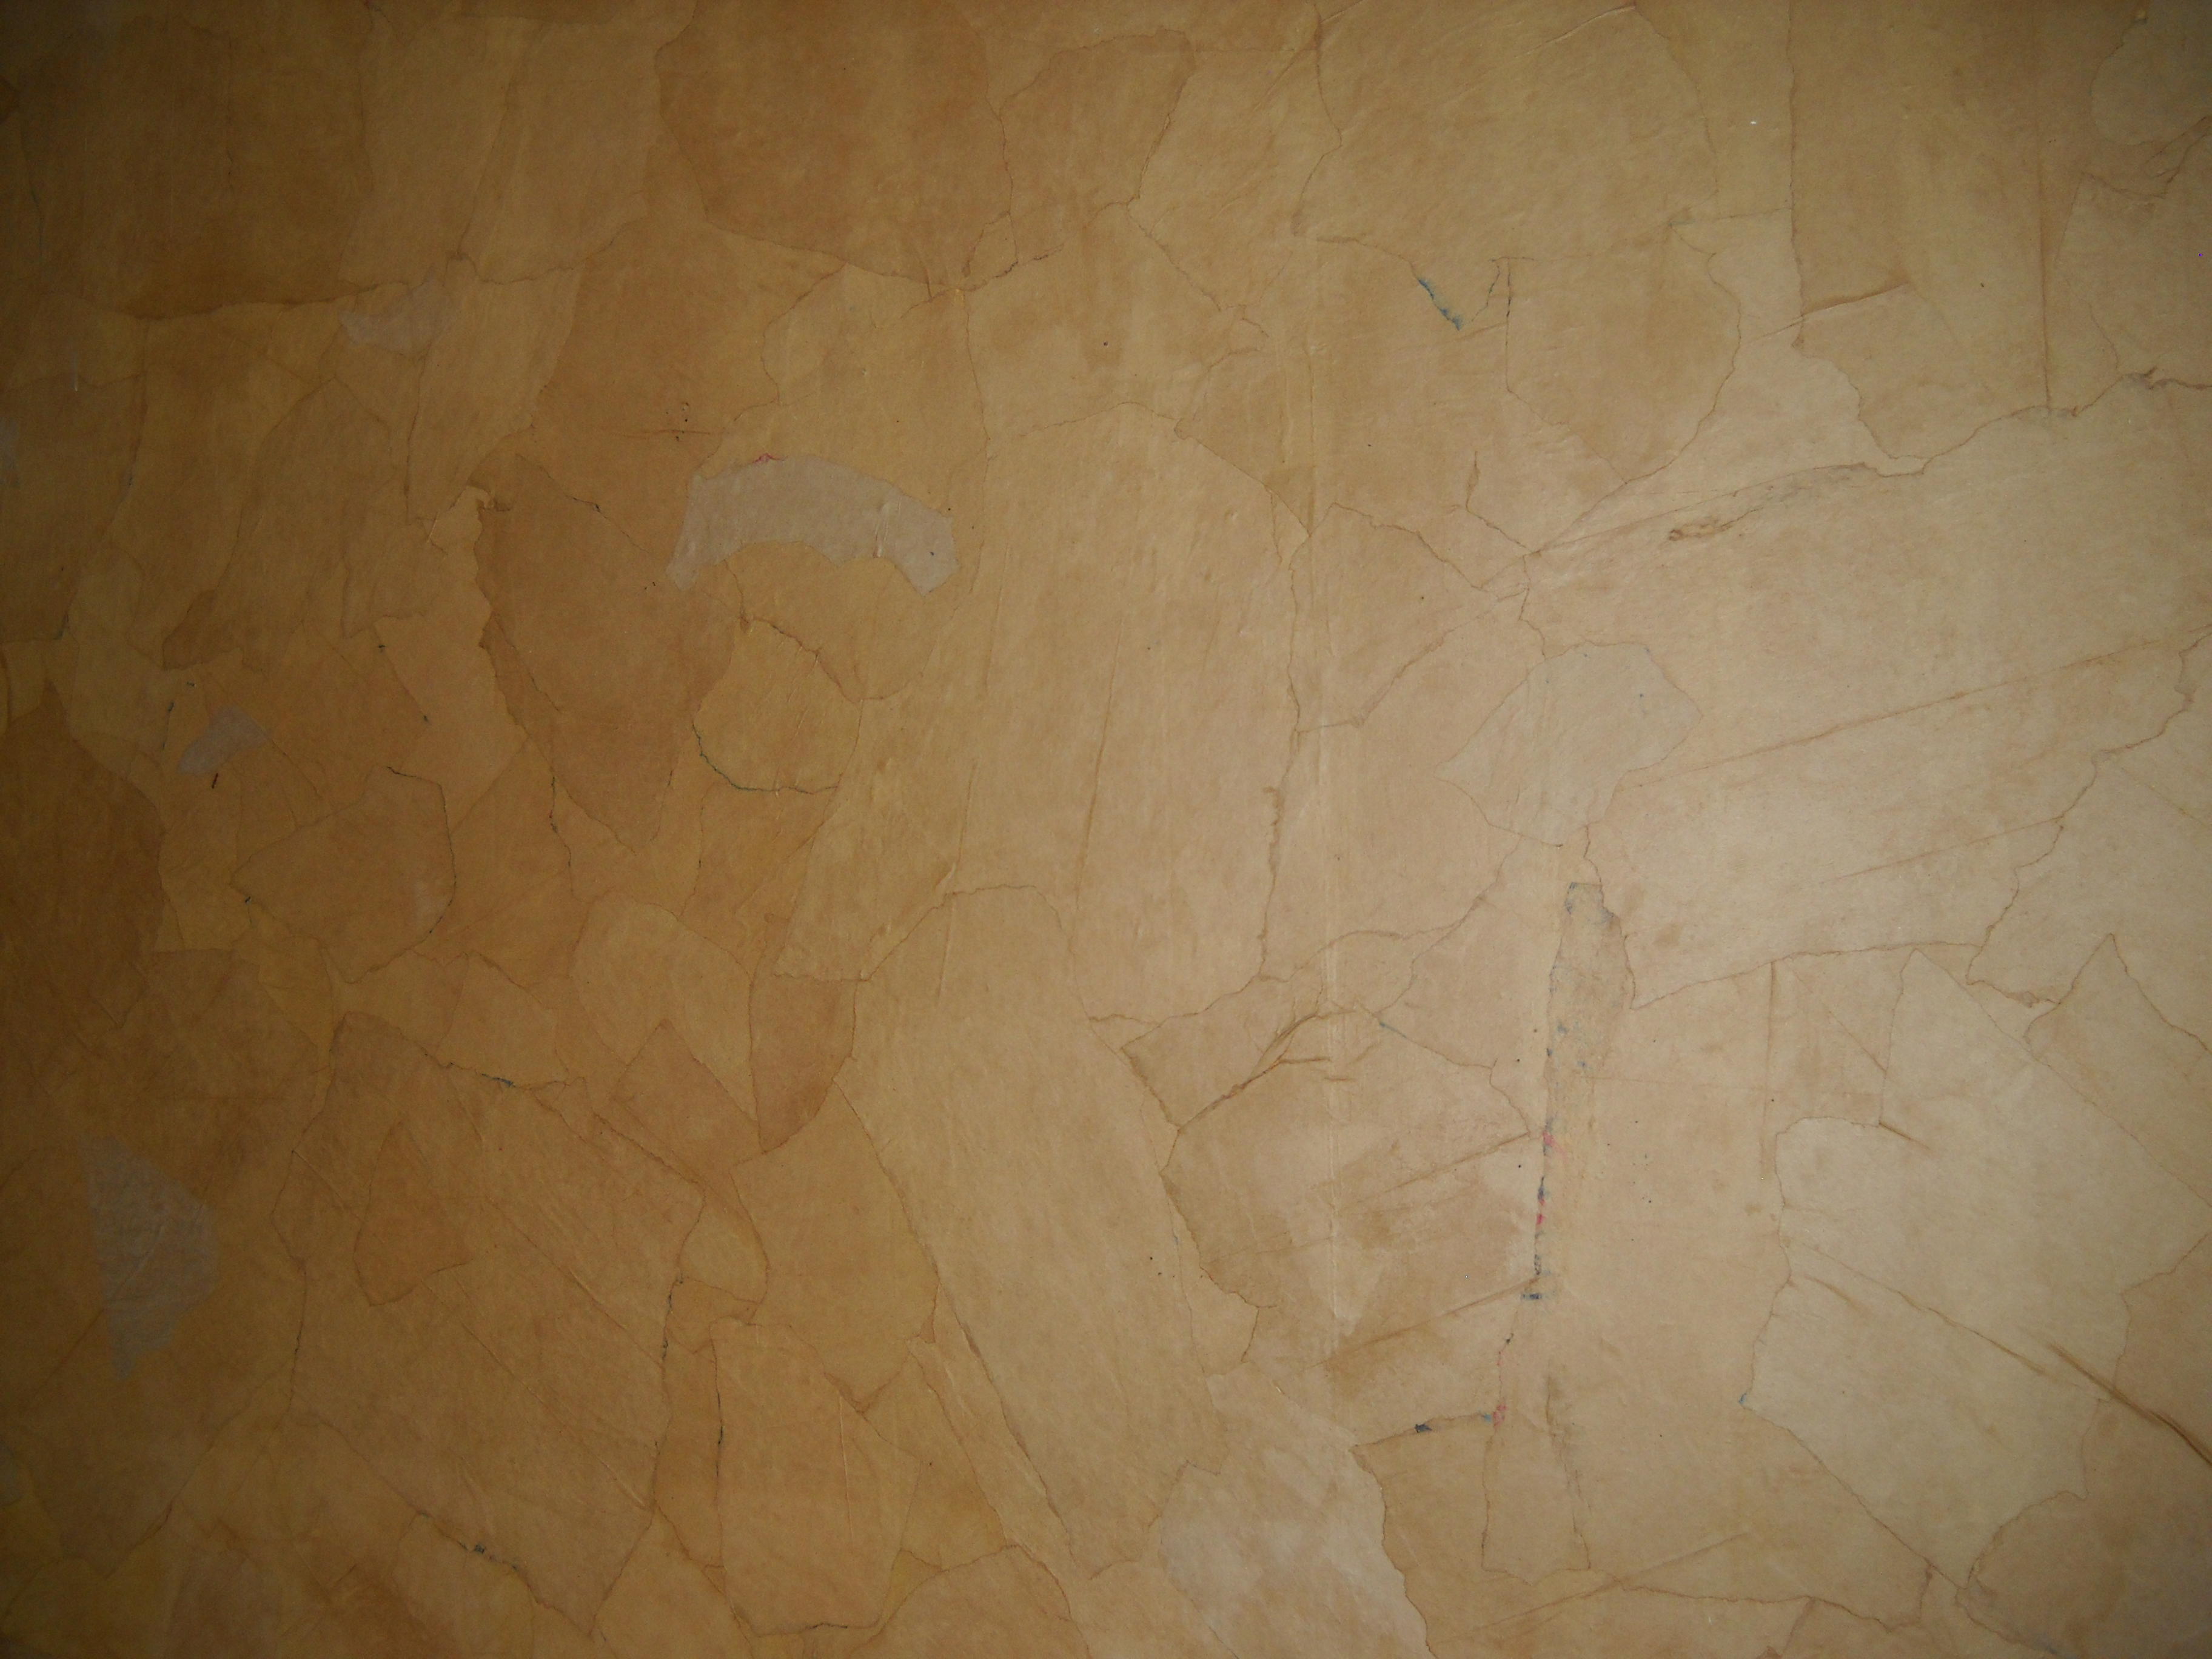 wallpaper Use wallpaper paste to glue to wall and then a coat over t 3648x2736